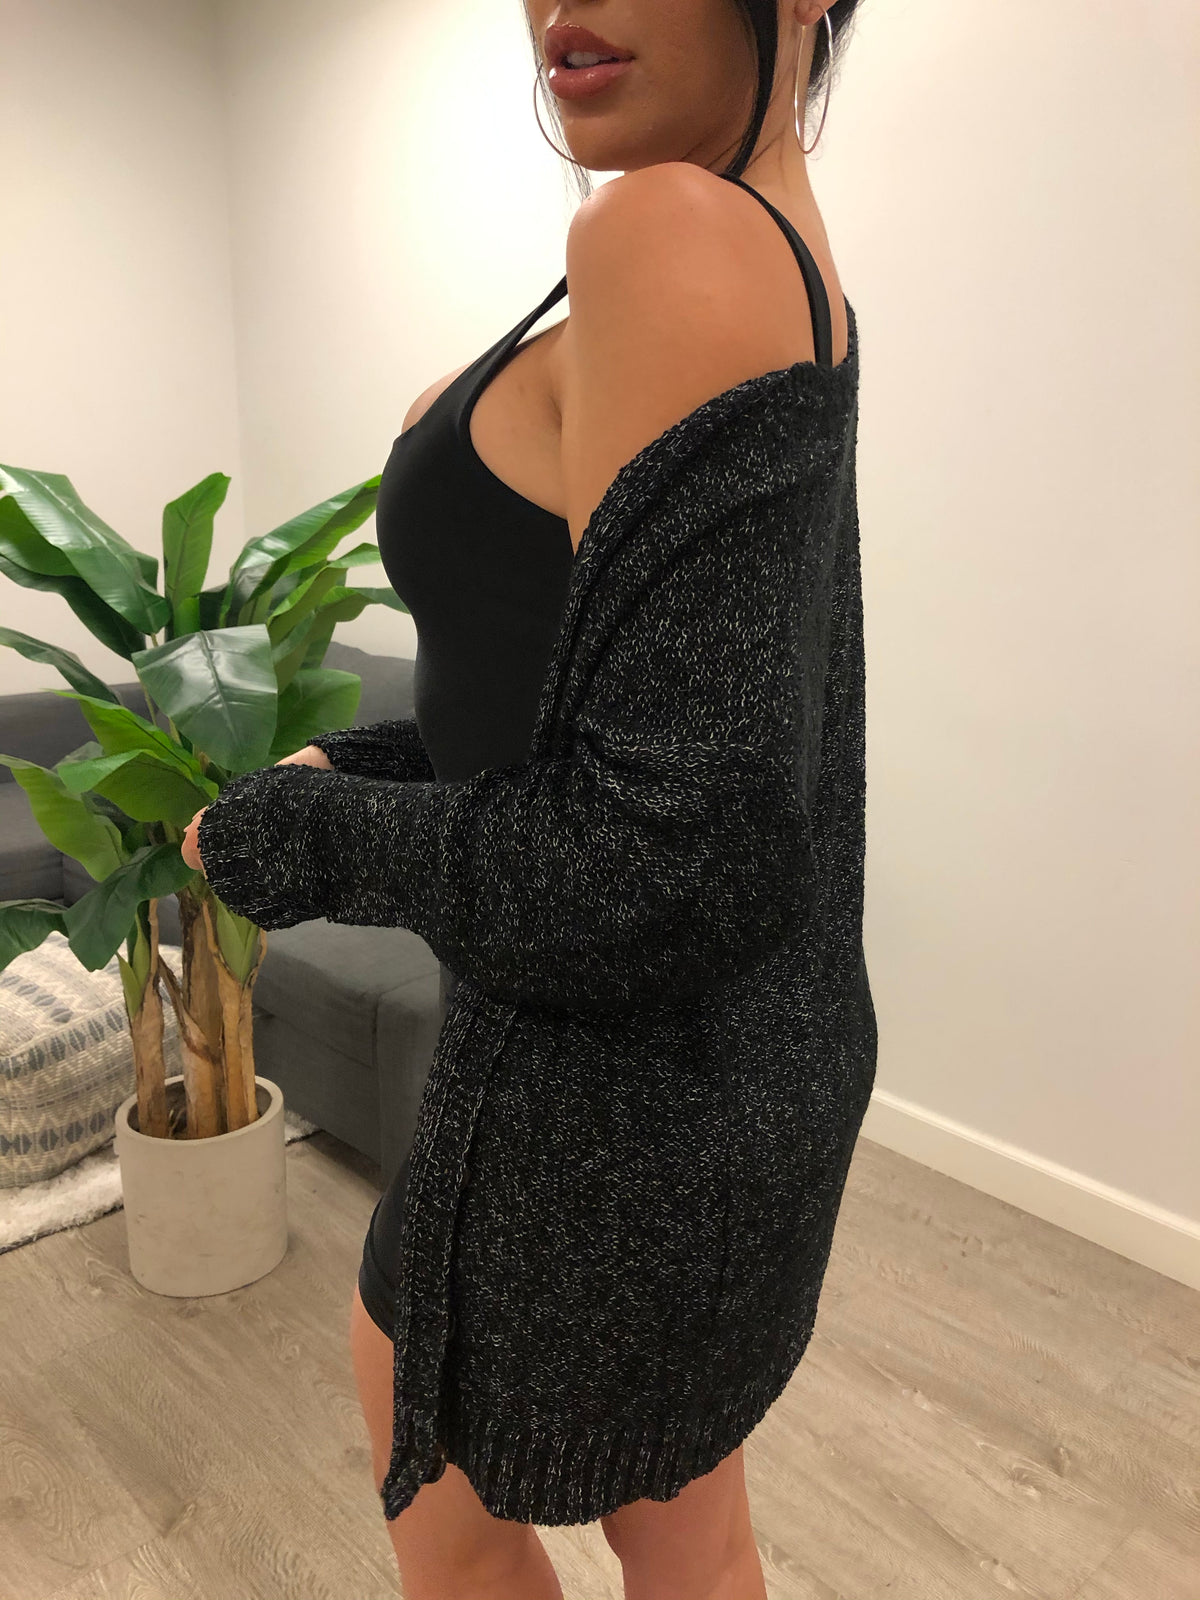 Black woven cardigan. Long sleeve and button-up. Loosely fitted. Mid-thigh length.